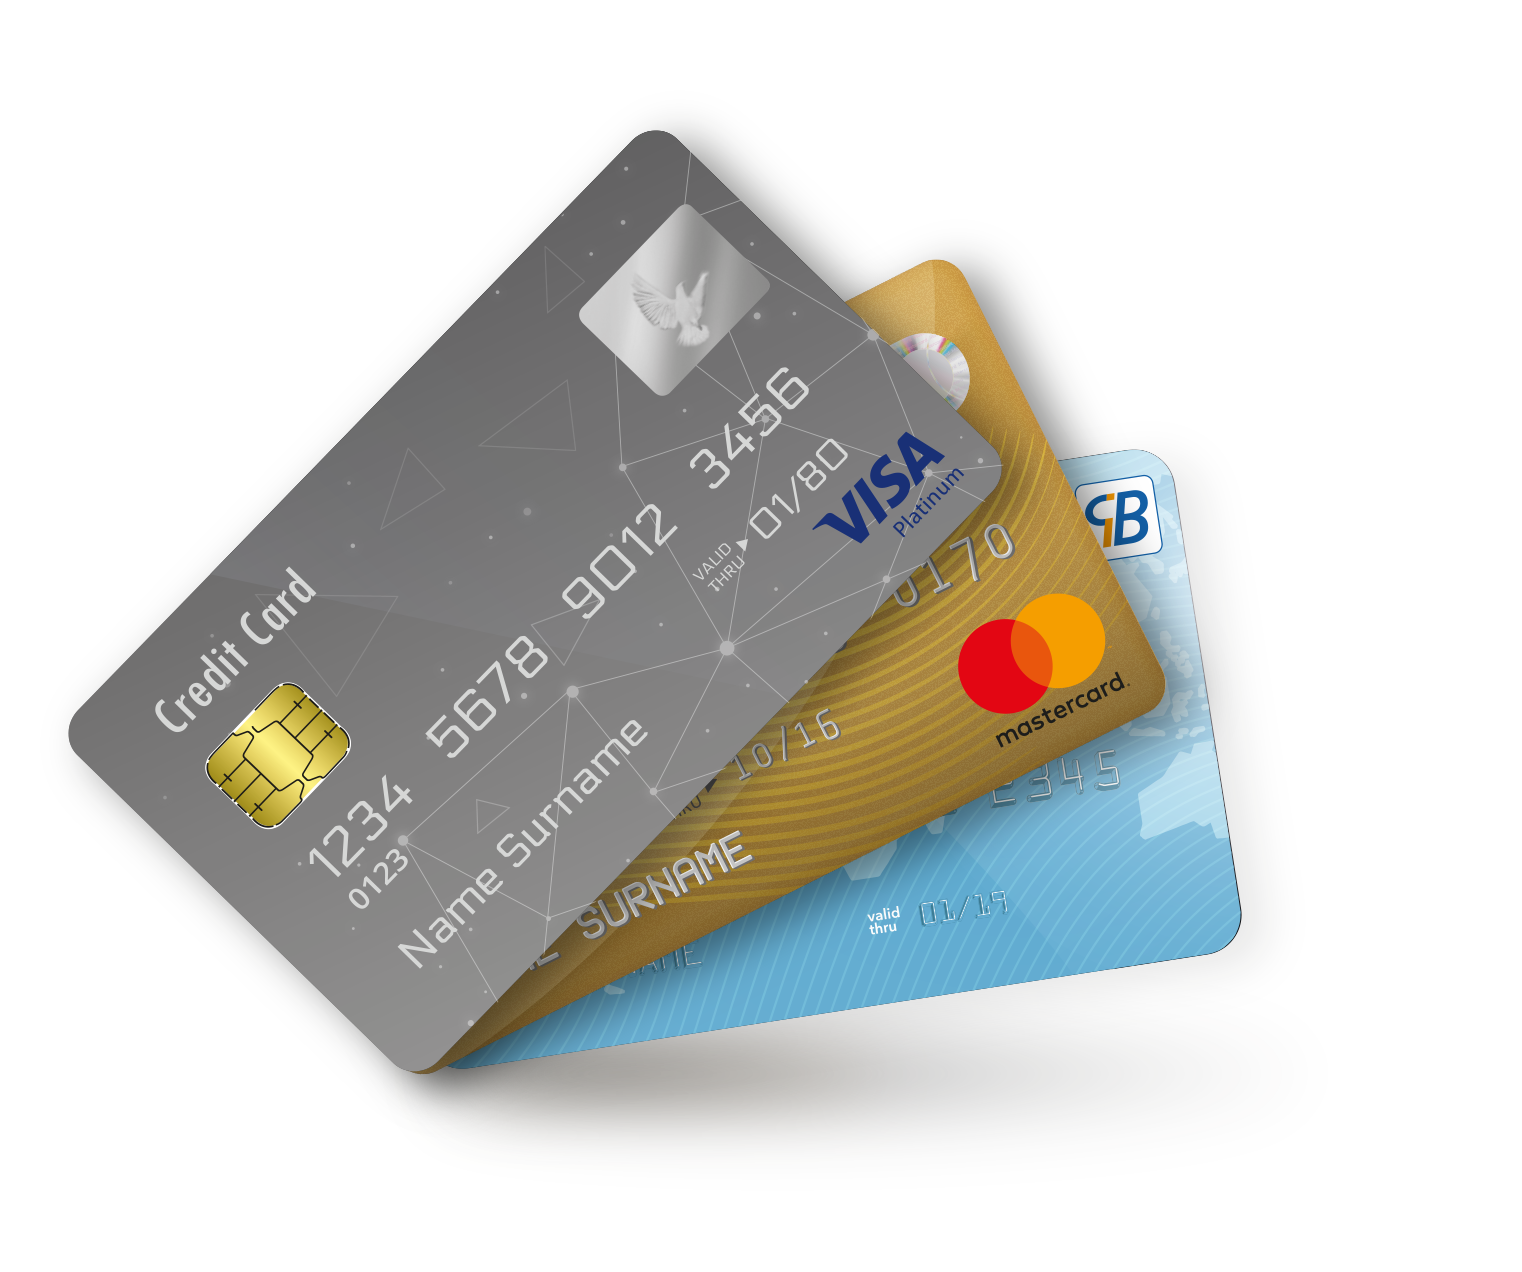 Benefits & Features of Bank Card